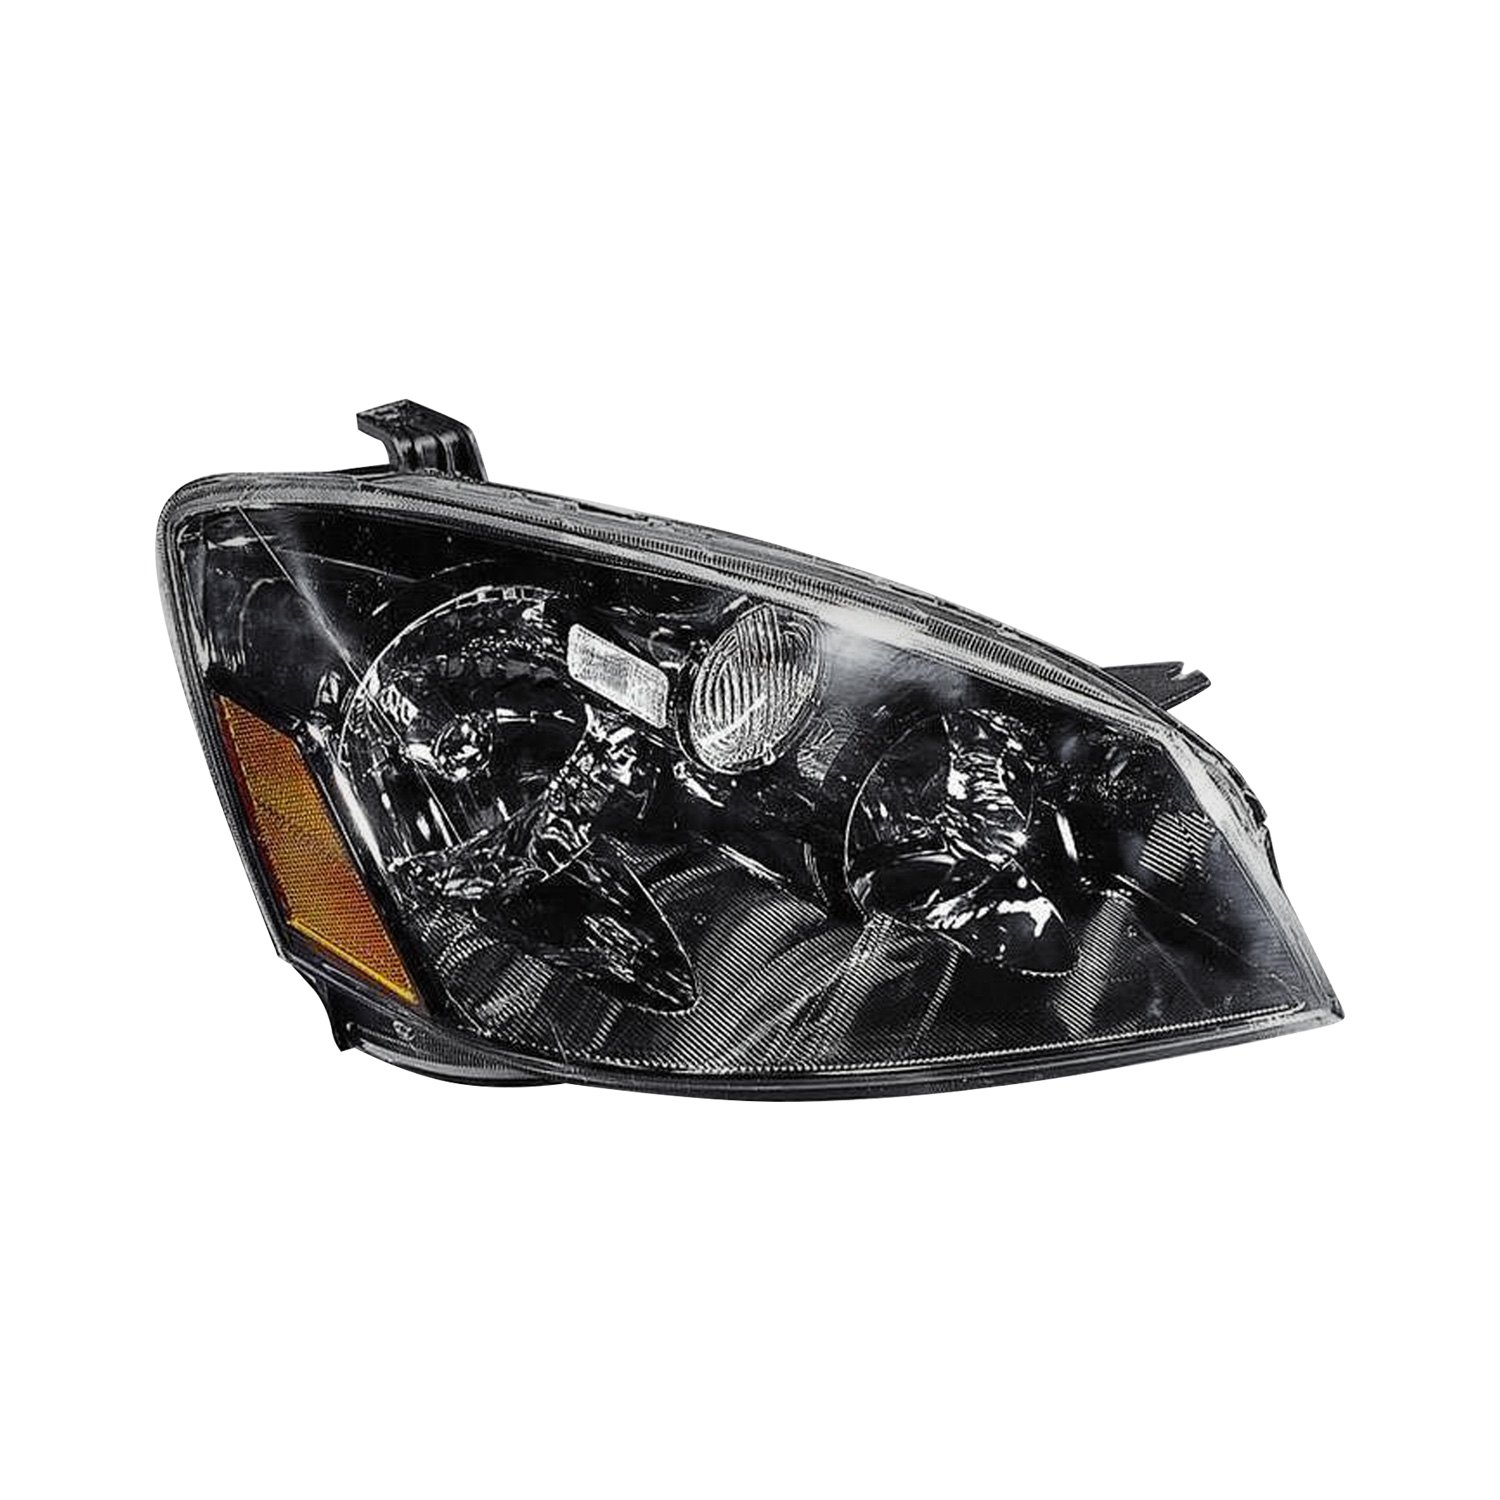 Replace nissan altima 2006 replacement headlight - 2006 nissan altima interior lights ...